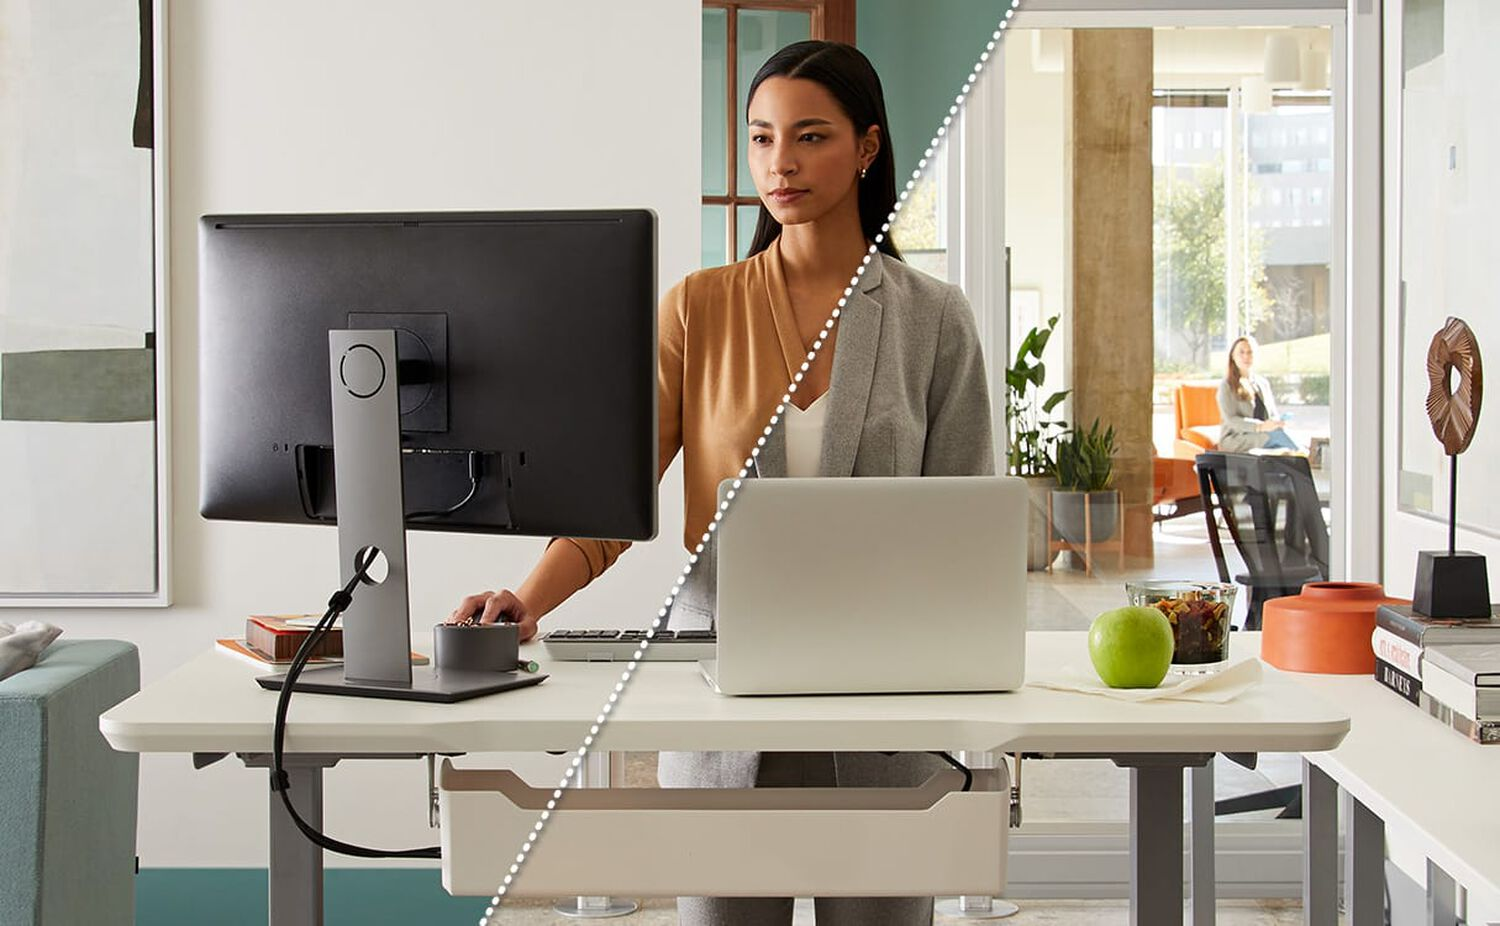 professional working at electric standing desk in home and office setting